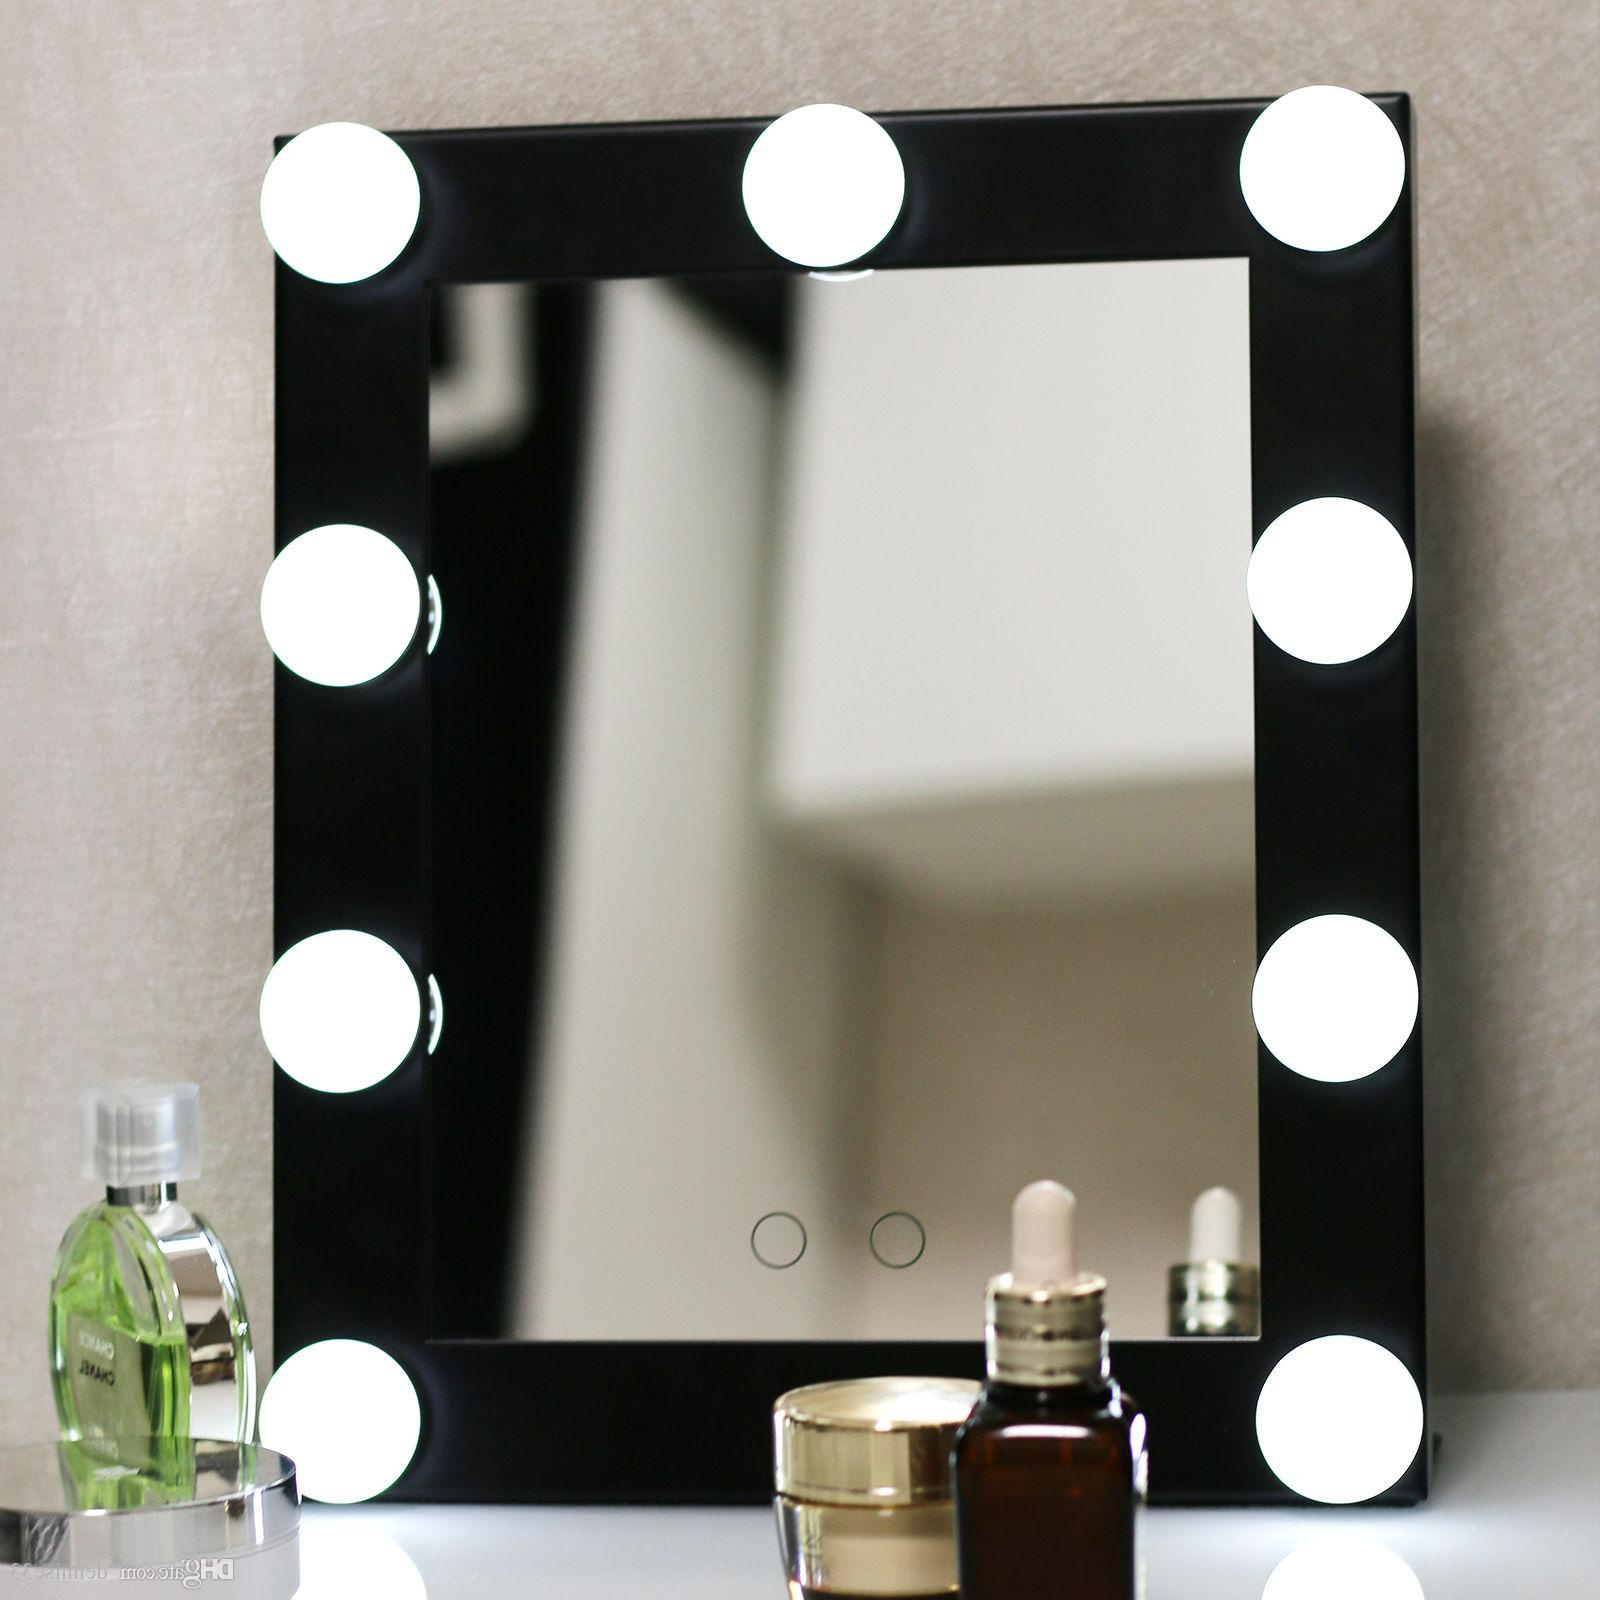 Preferred Cosmetic Wall Mirrors Within Free Shipping Hollywood Lighted Aluminum Table Desktop Wall Mounted  Cosmetic Makeup Artist Salon Vanity Girl Mirror With Lights Bulbs Around (View 8 of 20)